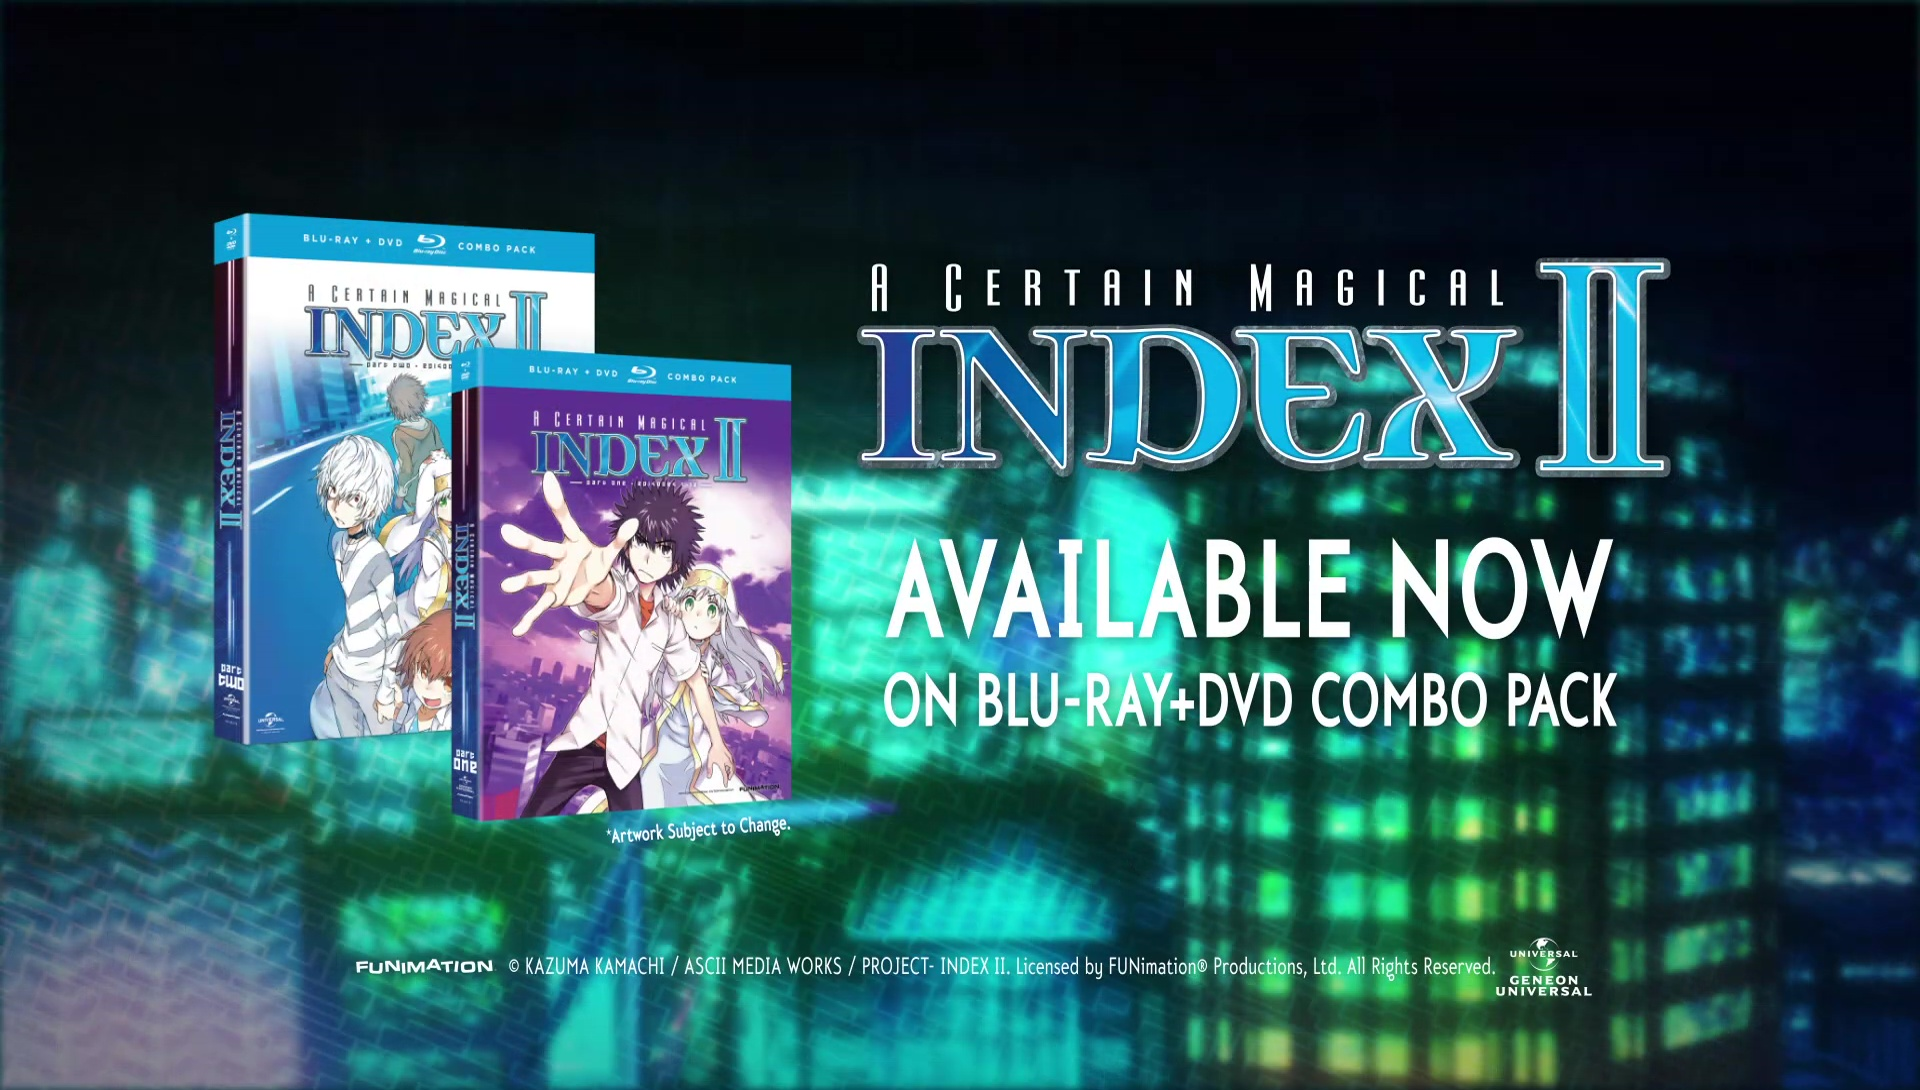 Watch A Certain Magical Index Episodes Sub & Dub | Action